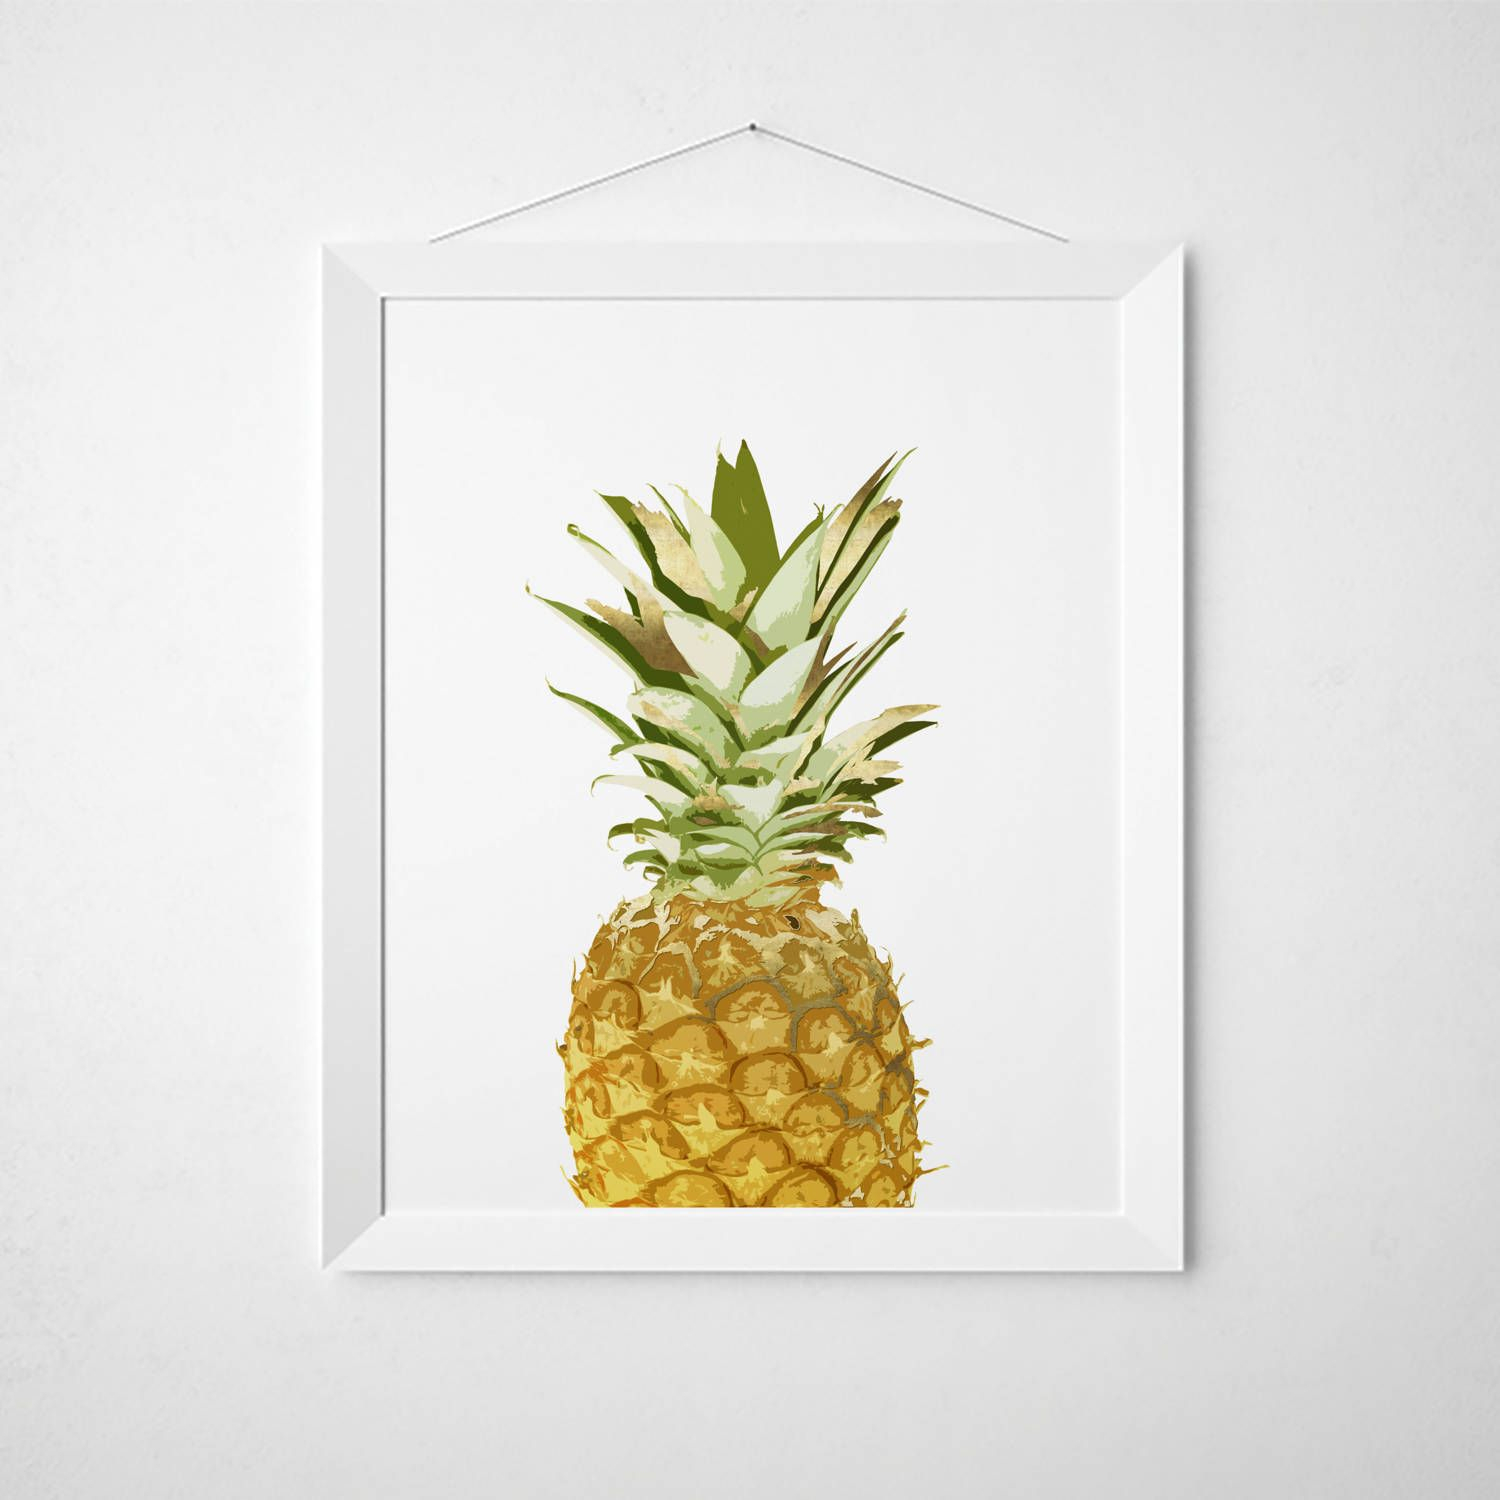 Pineapple Wall Decor – Pineapple Wall Art – Fruit Print With Pineapple Wall Decor (View 6 of 30)